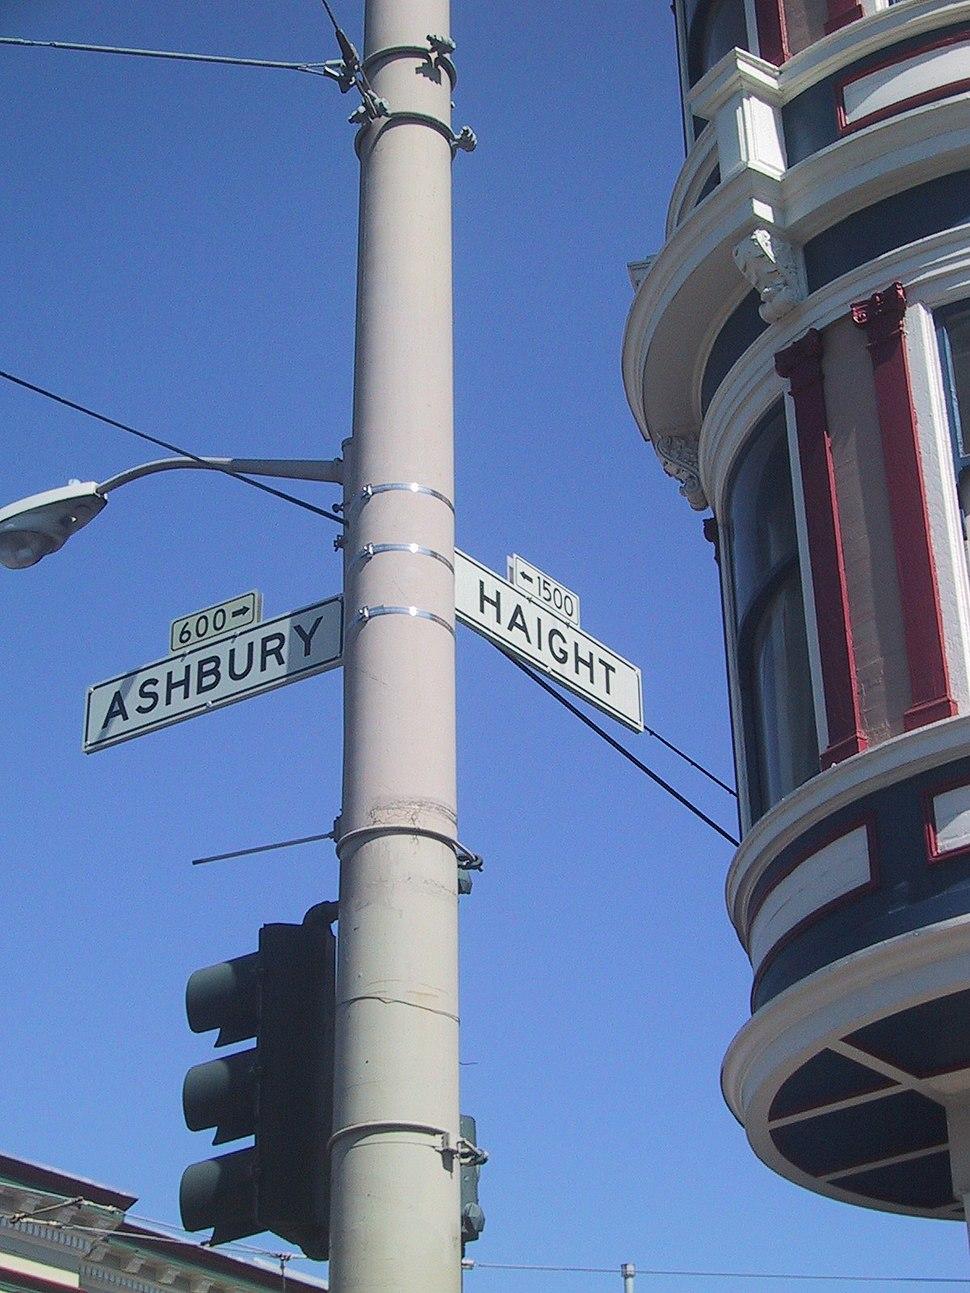 Junction of Haight and Ashbury